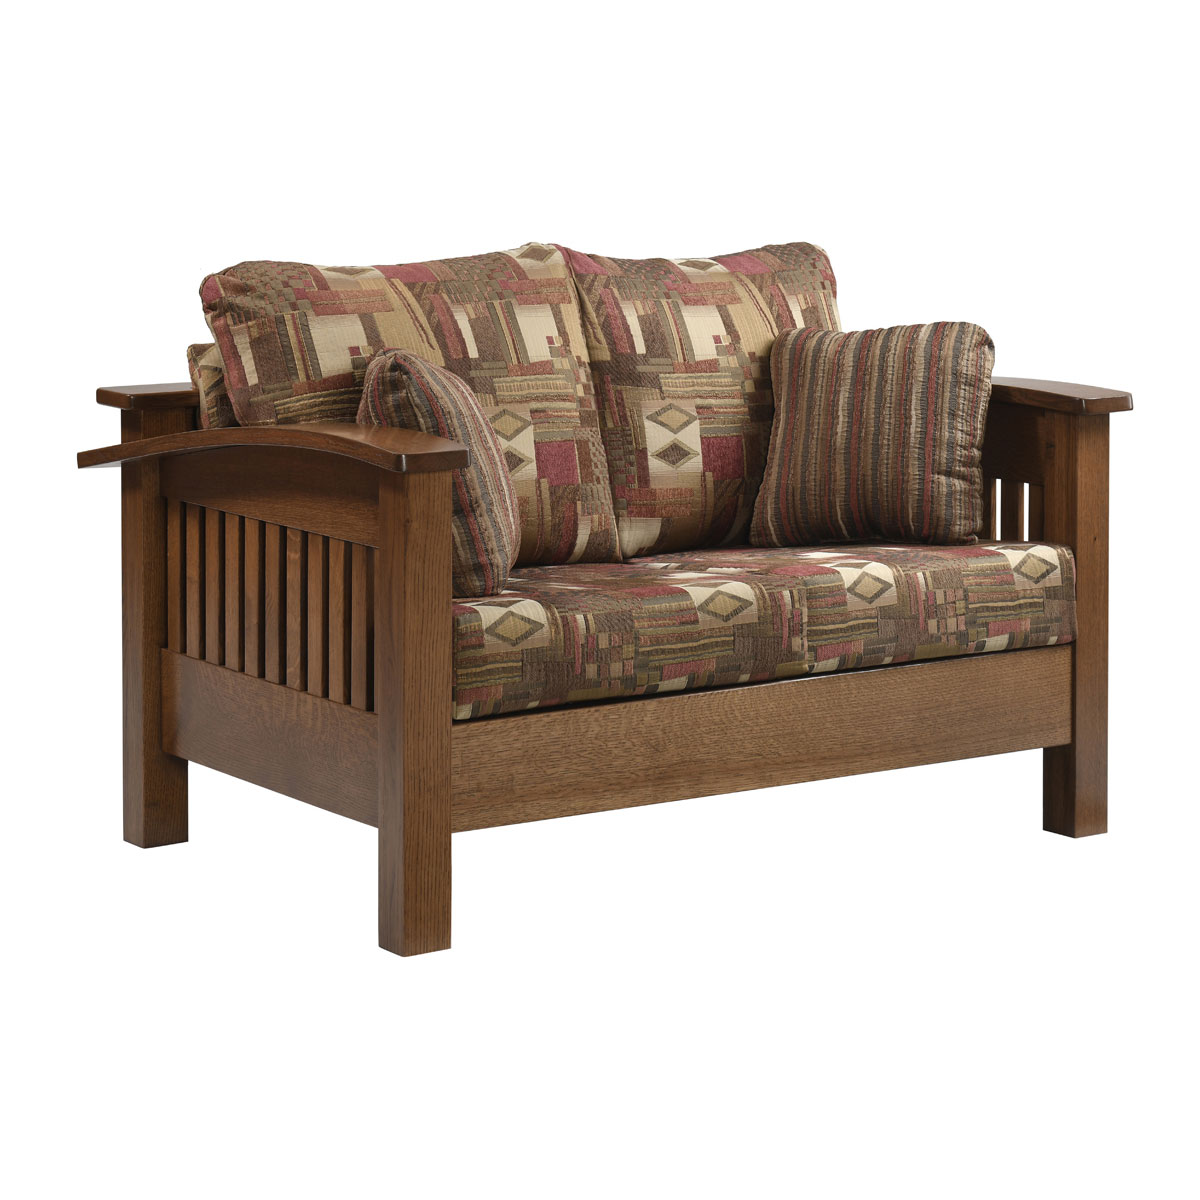 Liberty Mission Collection Loveseat